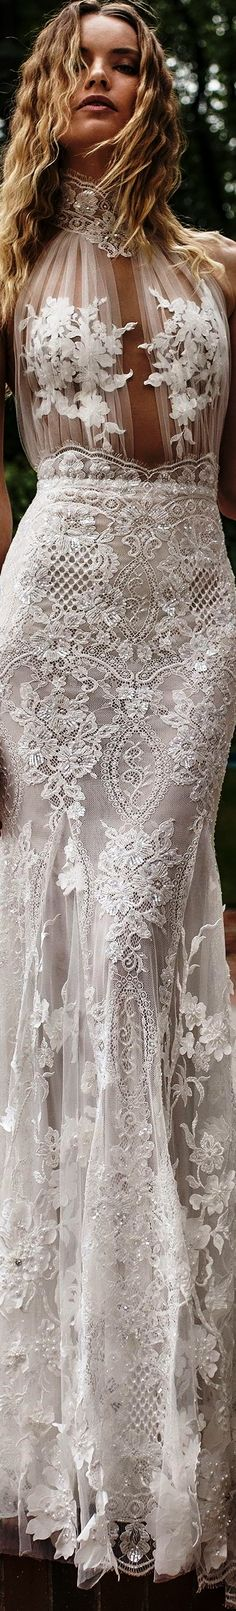 Lian Rokman 2018 bridal halter high neck full embellishment glamorous sexy elegant fit and flare sheath wedding dress keyhole back sweep train